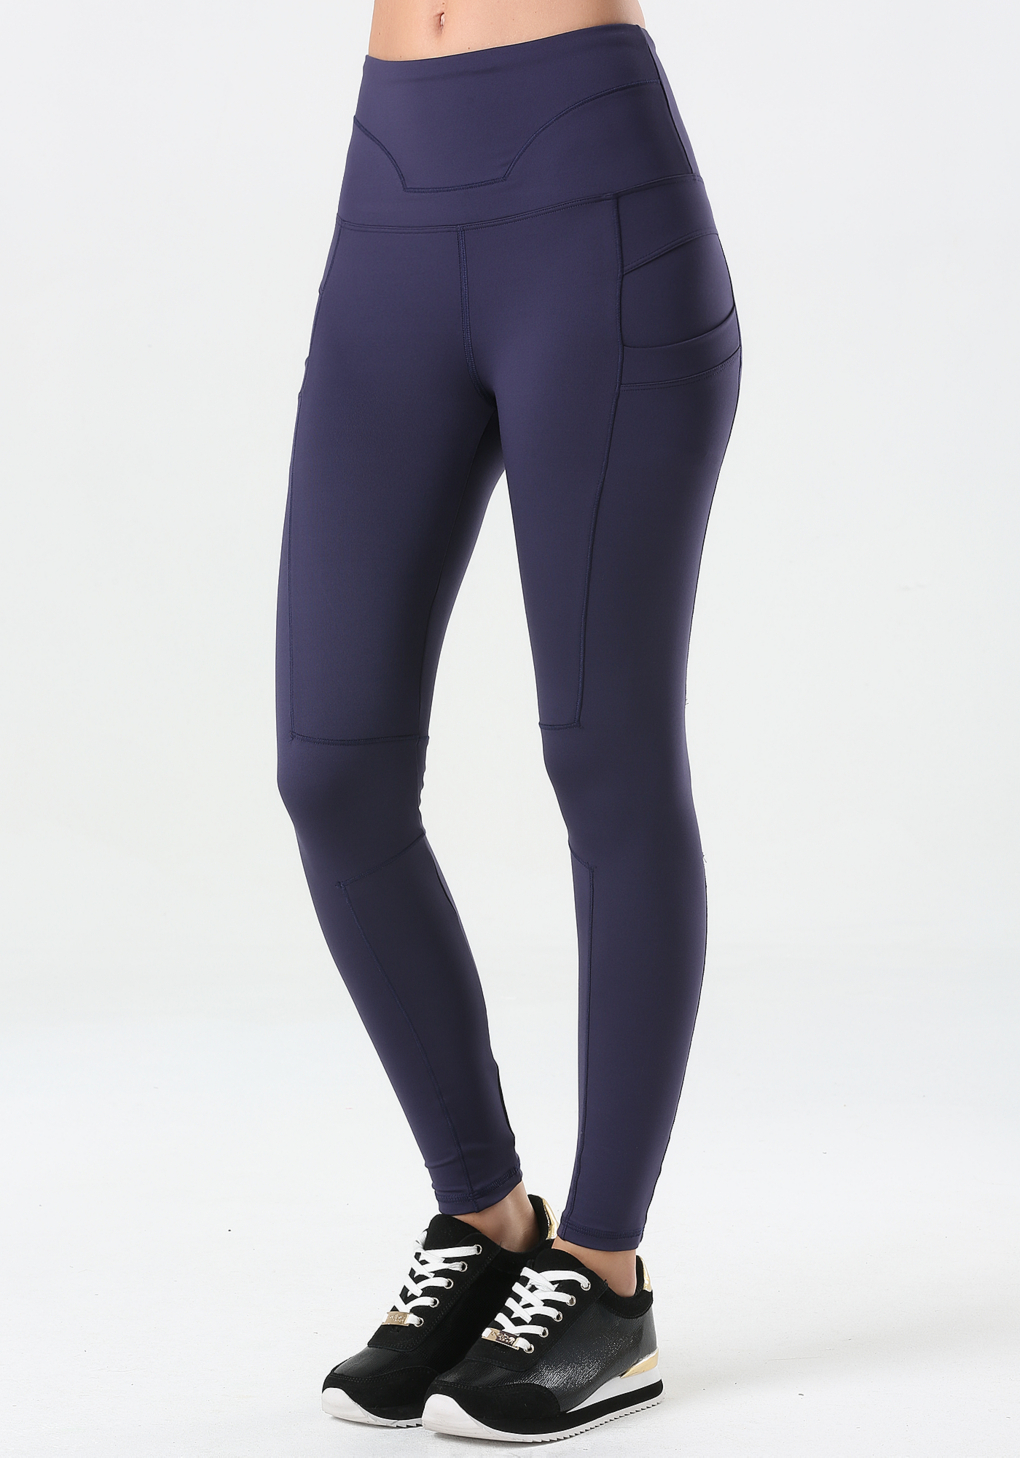 Bebe High-waist Workout Leggings in Blue | Lyst